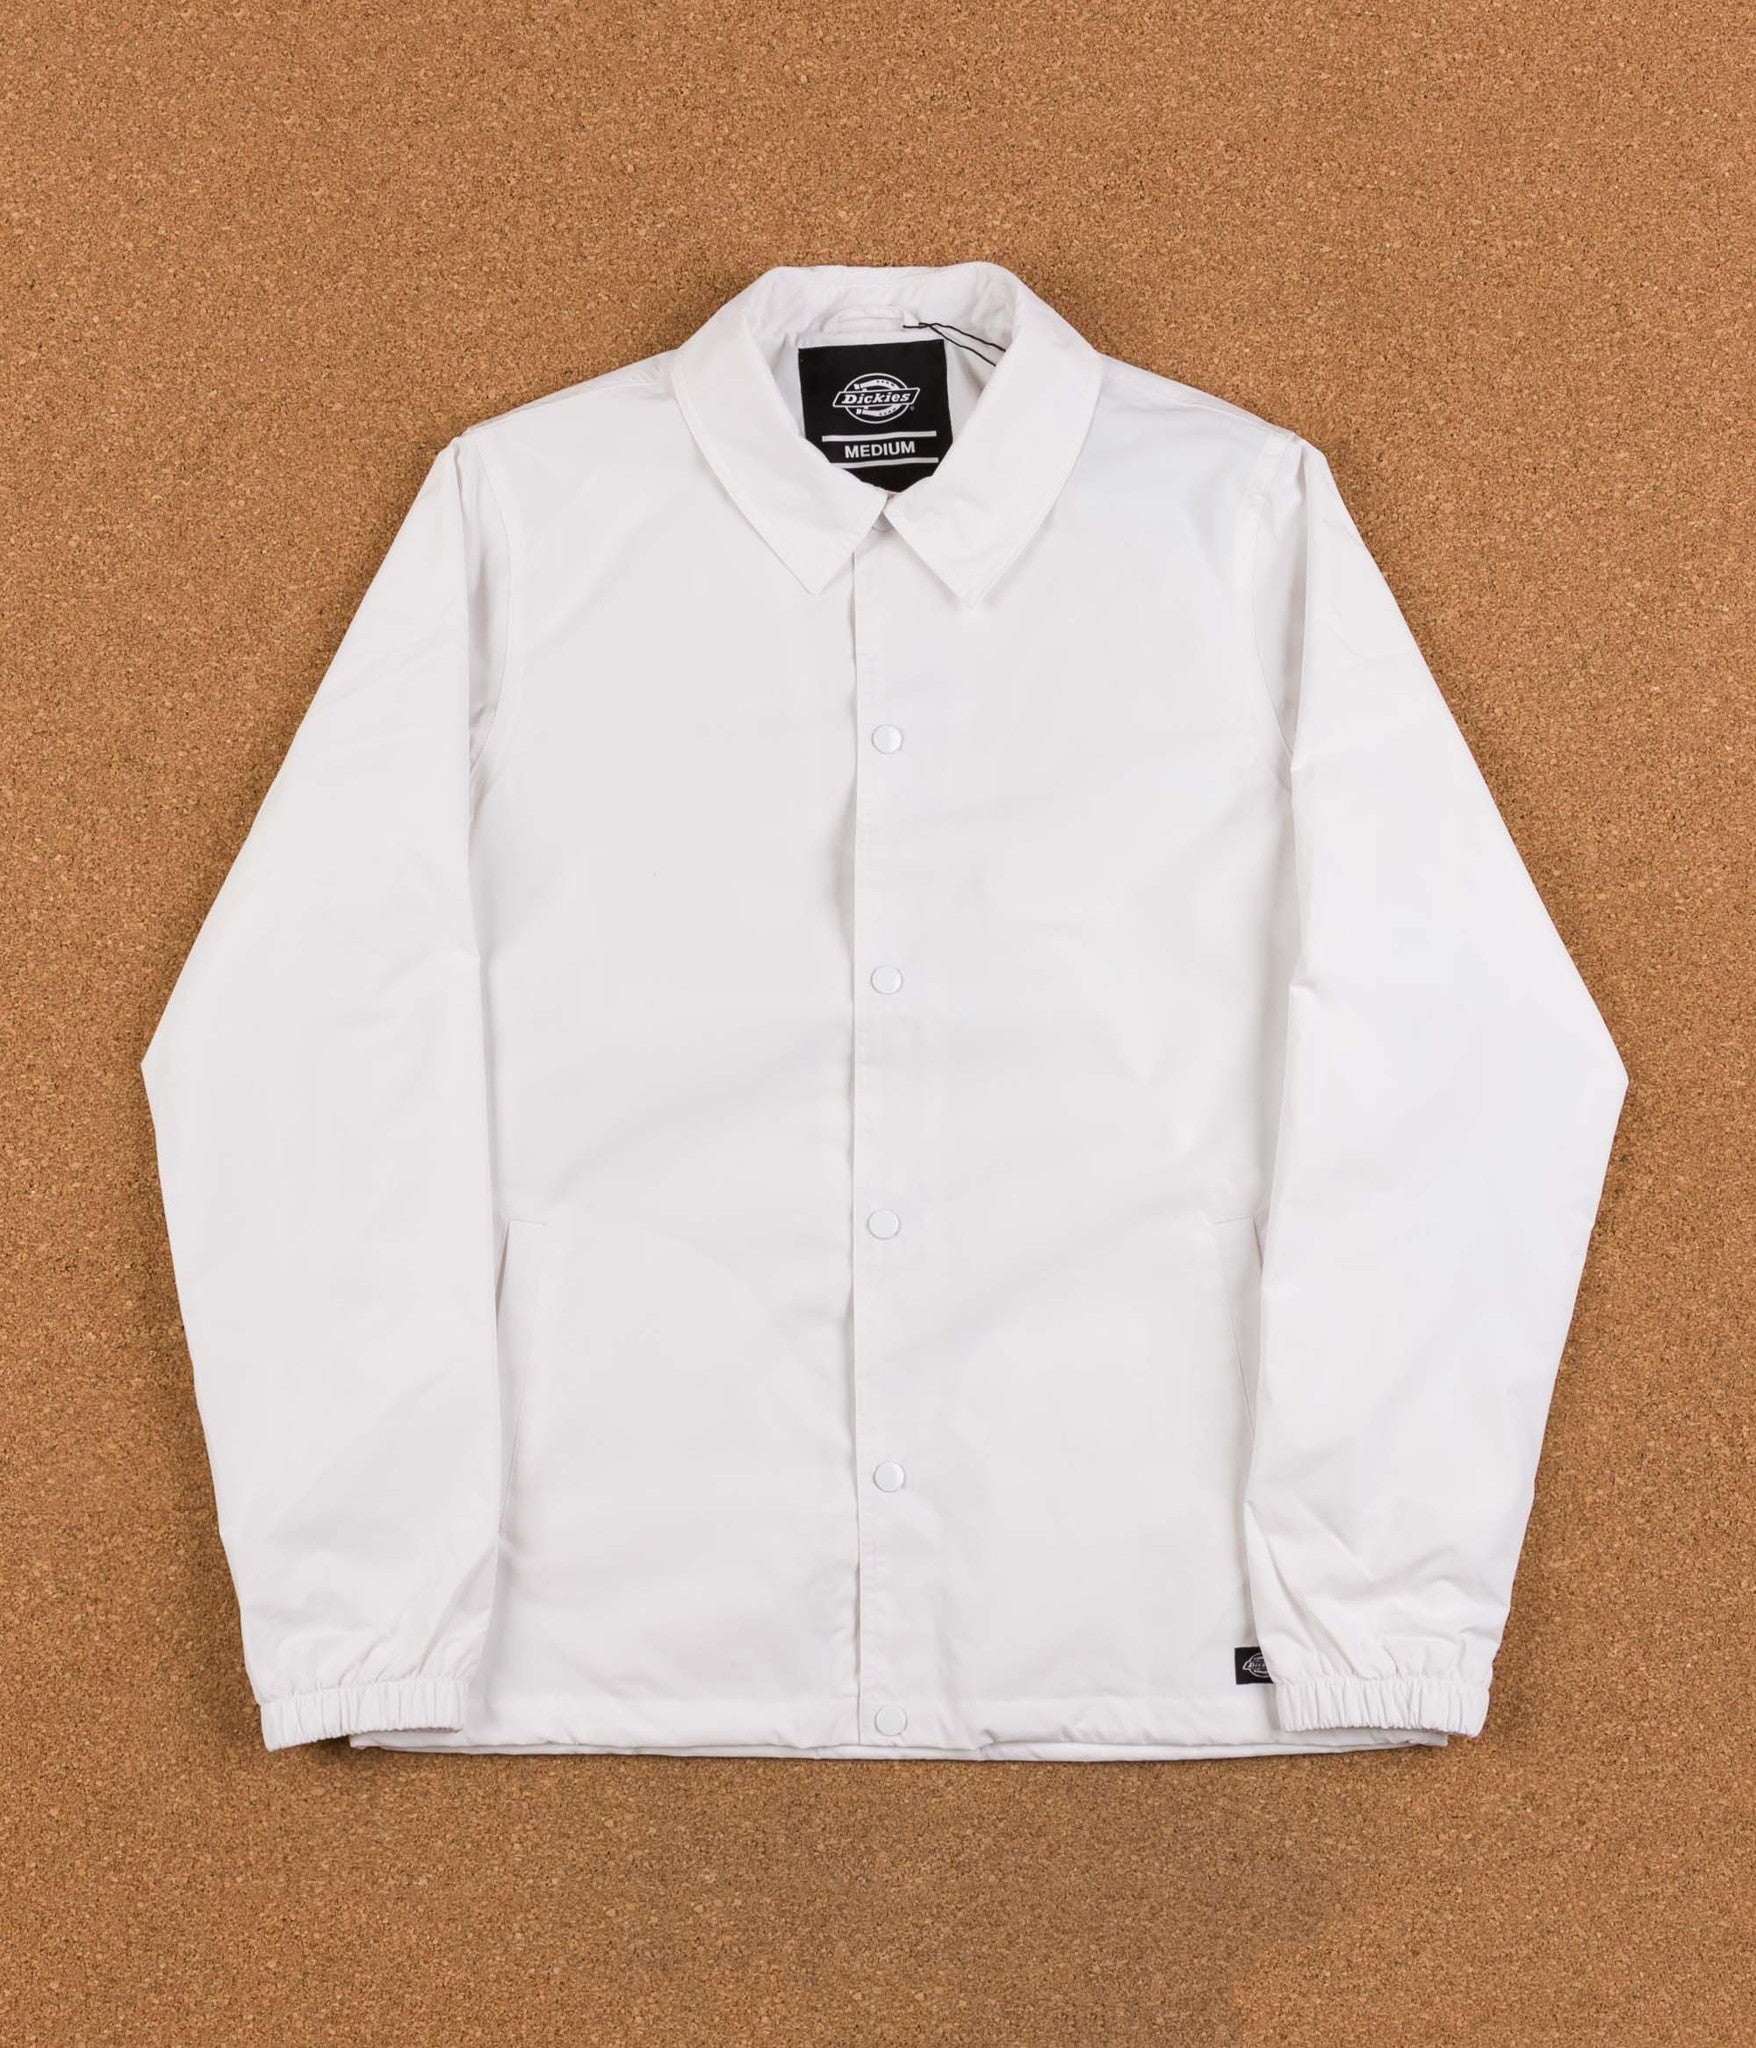 Dickies Torrance Jacket - White